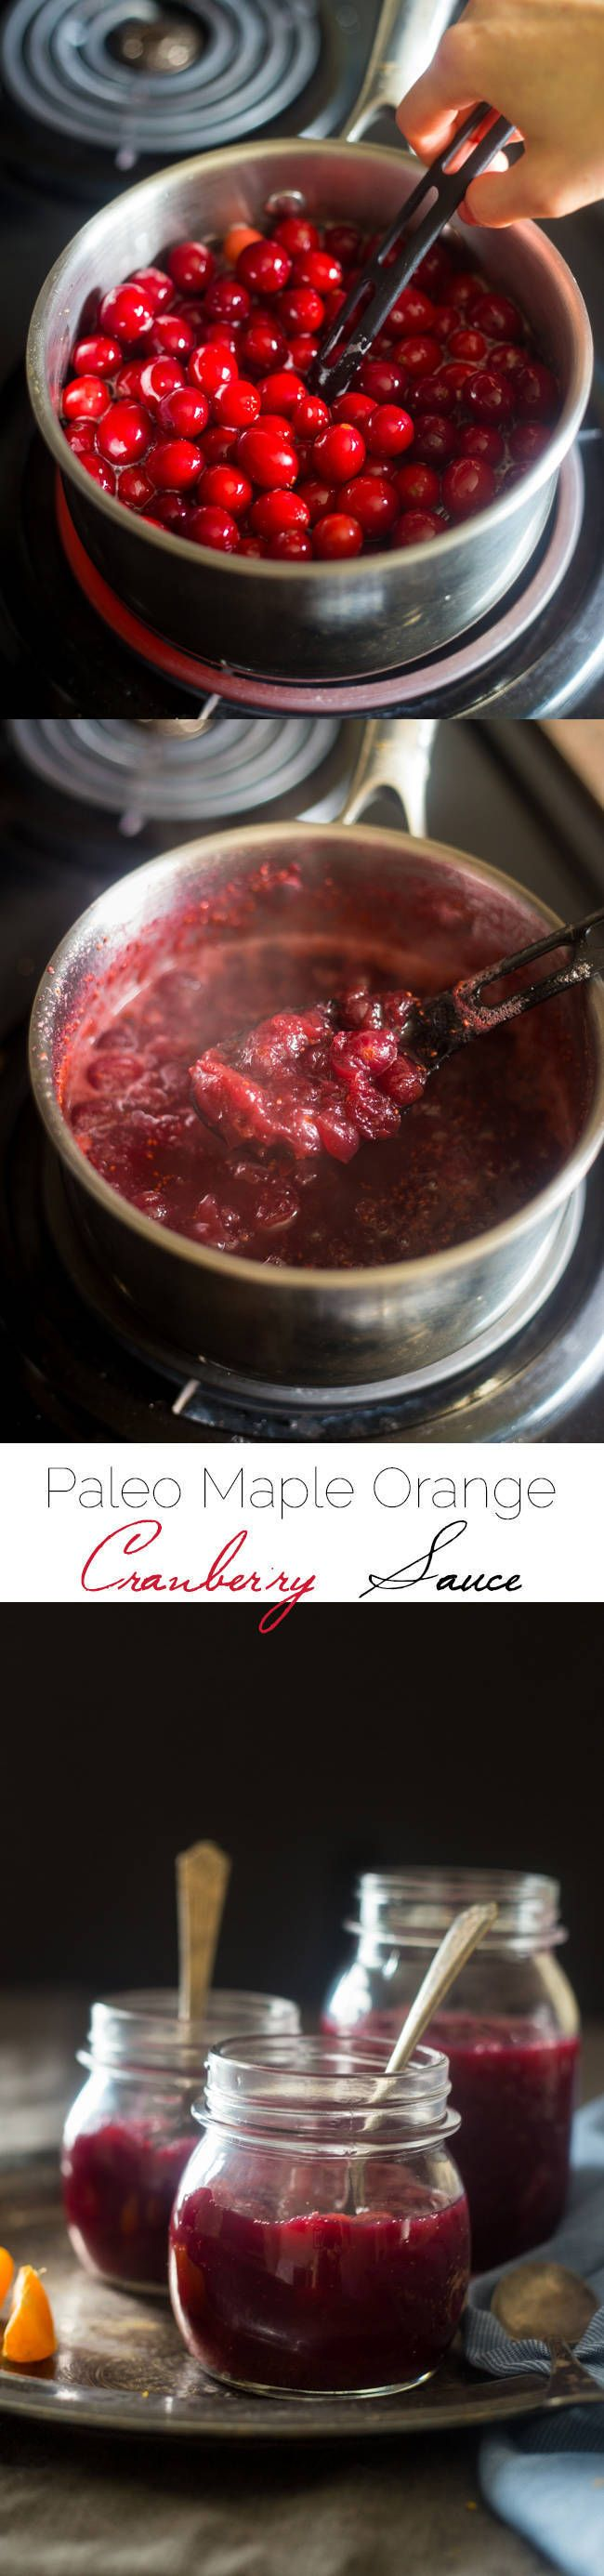 Paleo Maple Orange Cranberry Sauce - This healthy, homemade cranberry sauce uses only 3 ingredients and is Paleo friendly and refined- sugar free! It's ready in 30 minutes and is perfect for Thanksgiving! | Foodfaithfitness.com| @FoodFaithFit